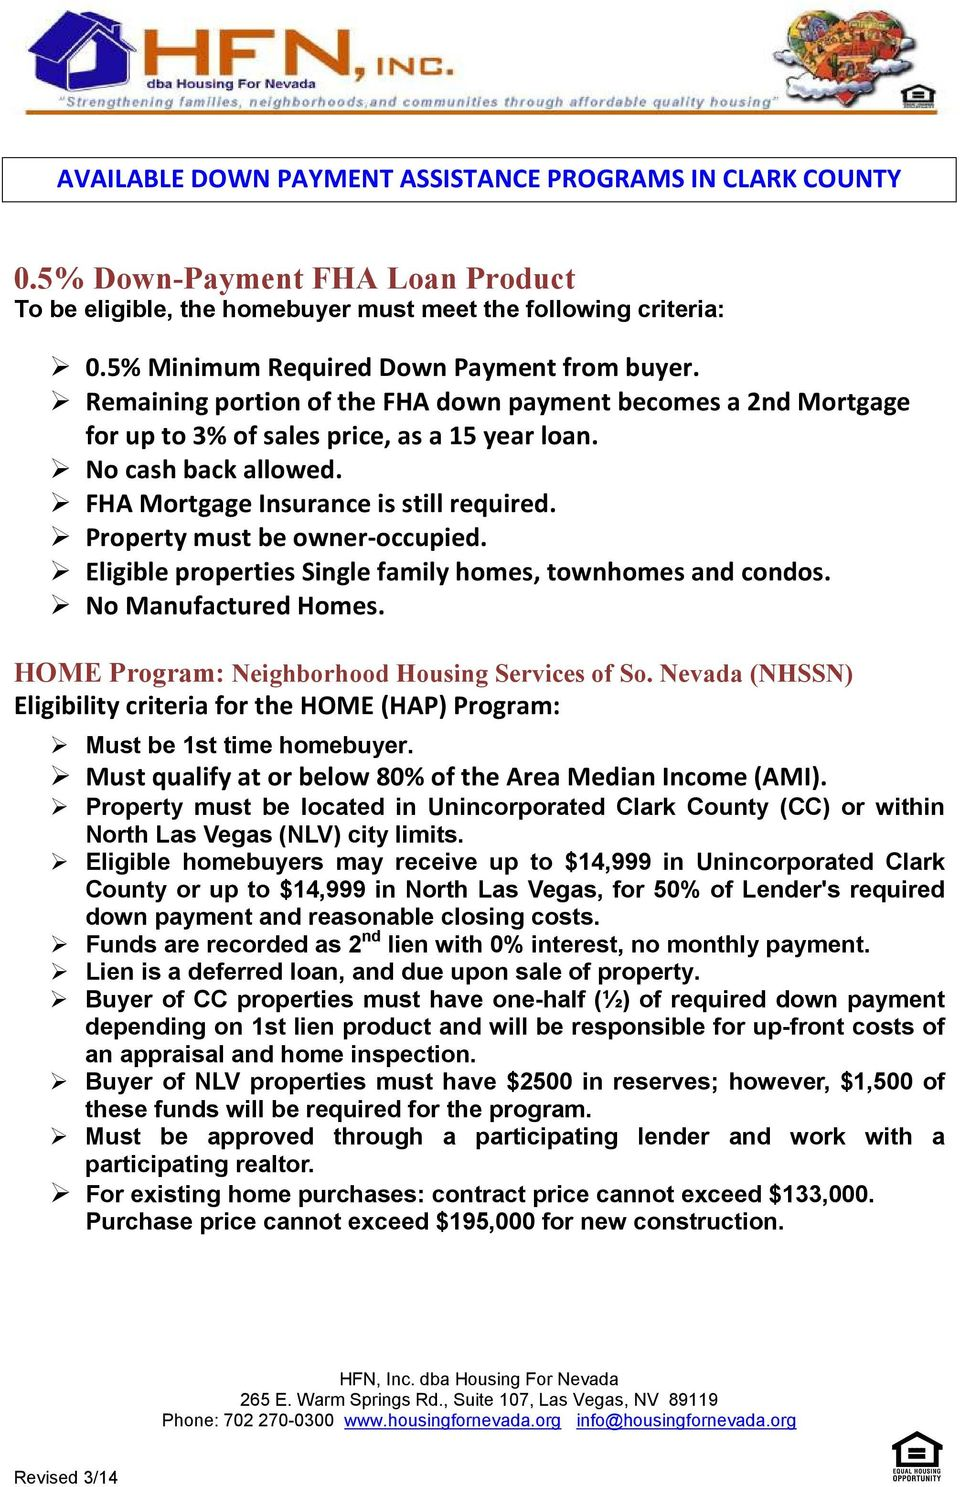 Nevada (NHSSN) Eligibility criteria for the HOME (HAP) Program: Must be 1st time homebuyer. Property must be located in Unincorporated Clark County (CC) or within North Las Vegas (NLV) city limits.